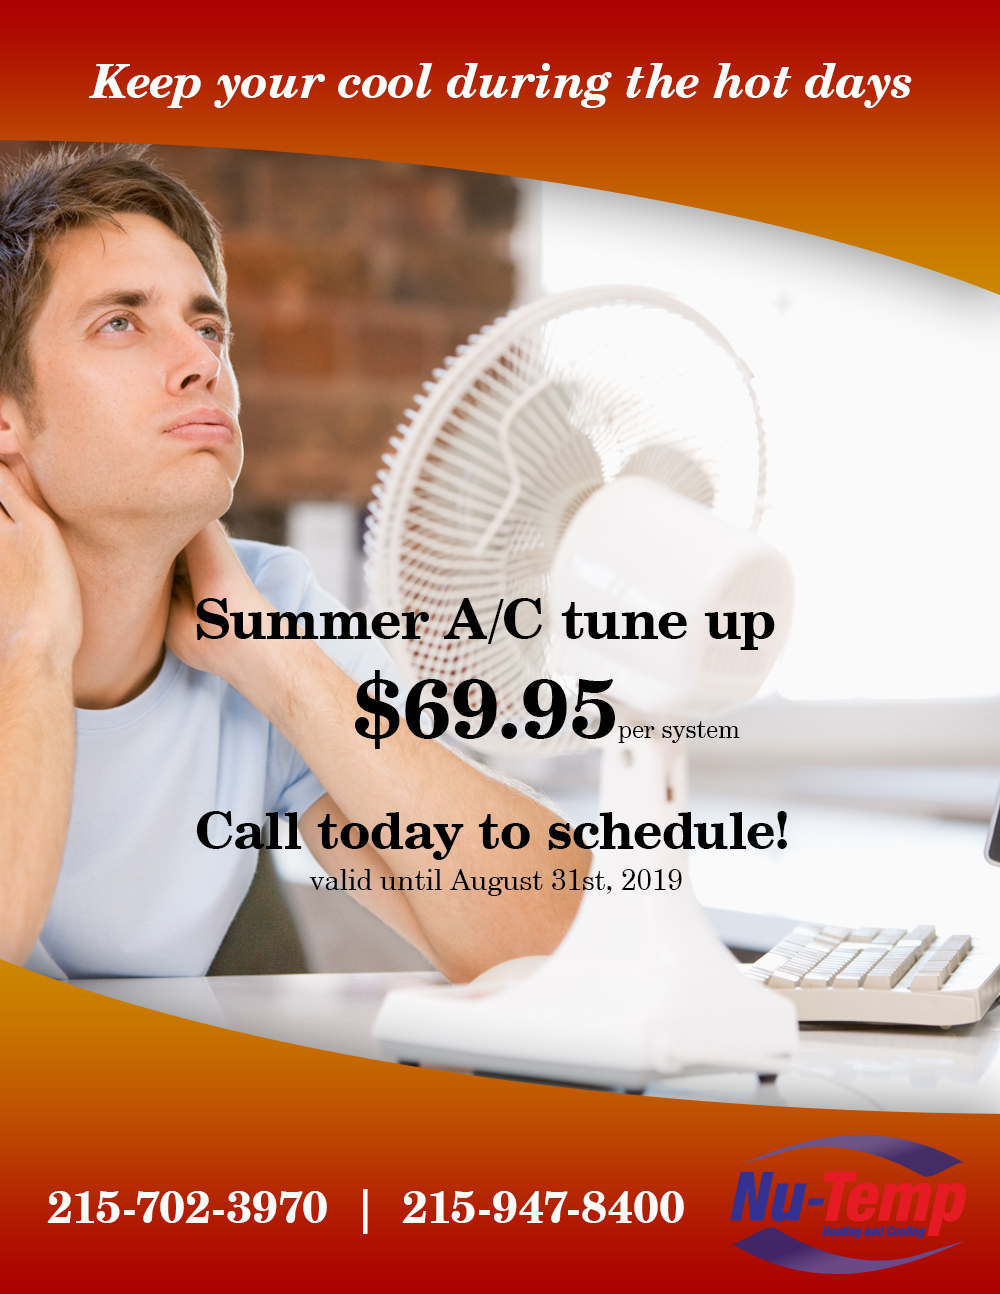 Summer A/C tune up Ad